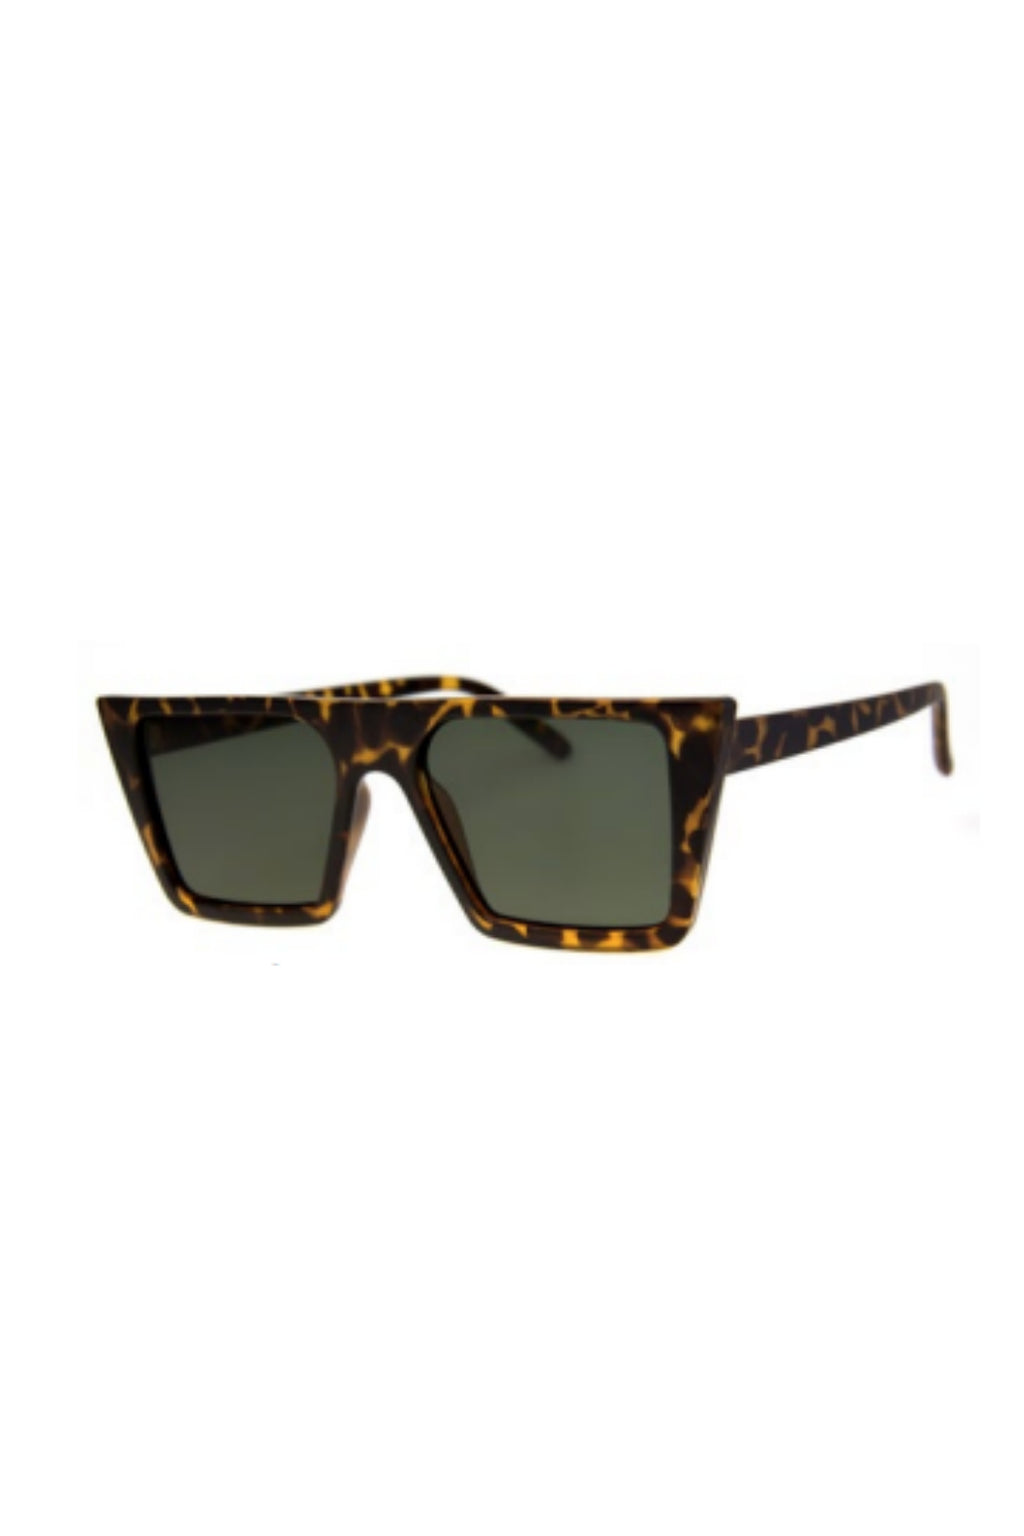 Witch Doctor Sunnies